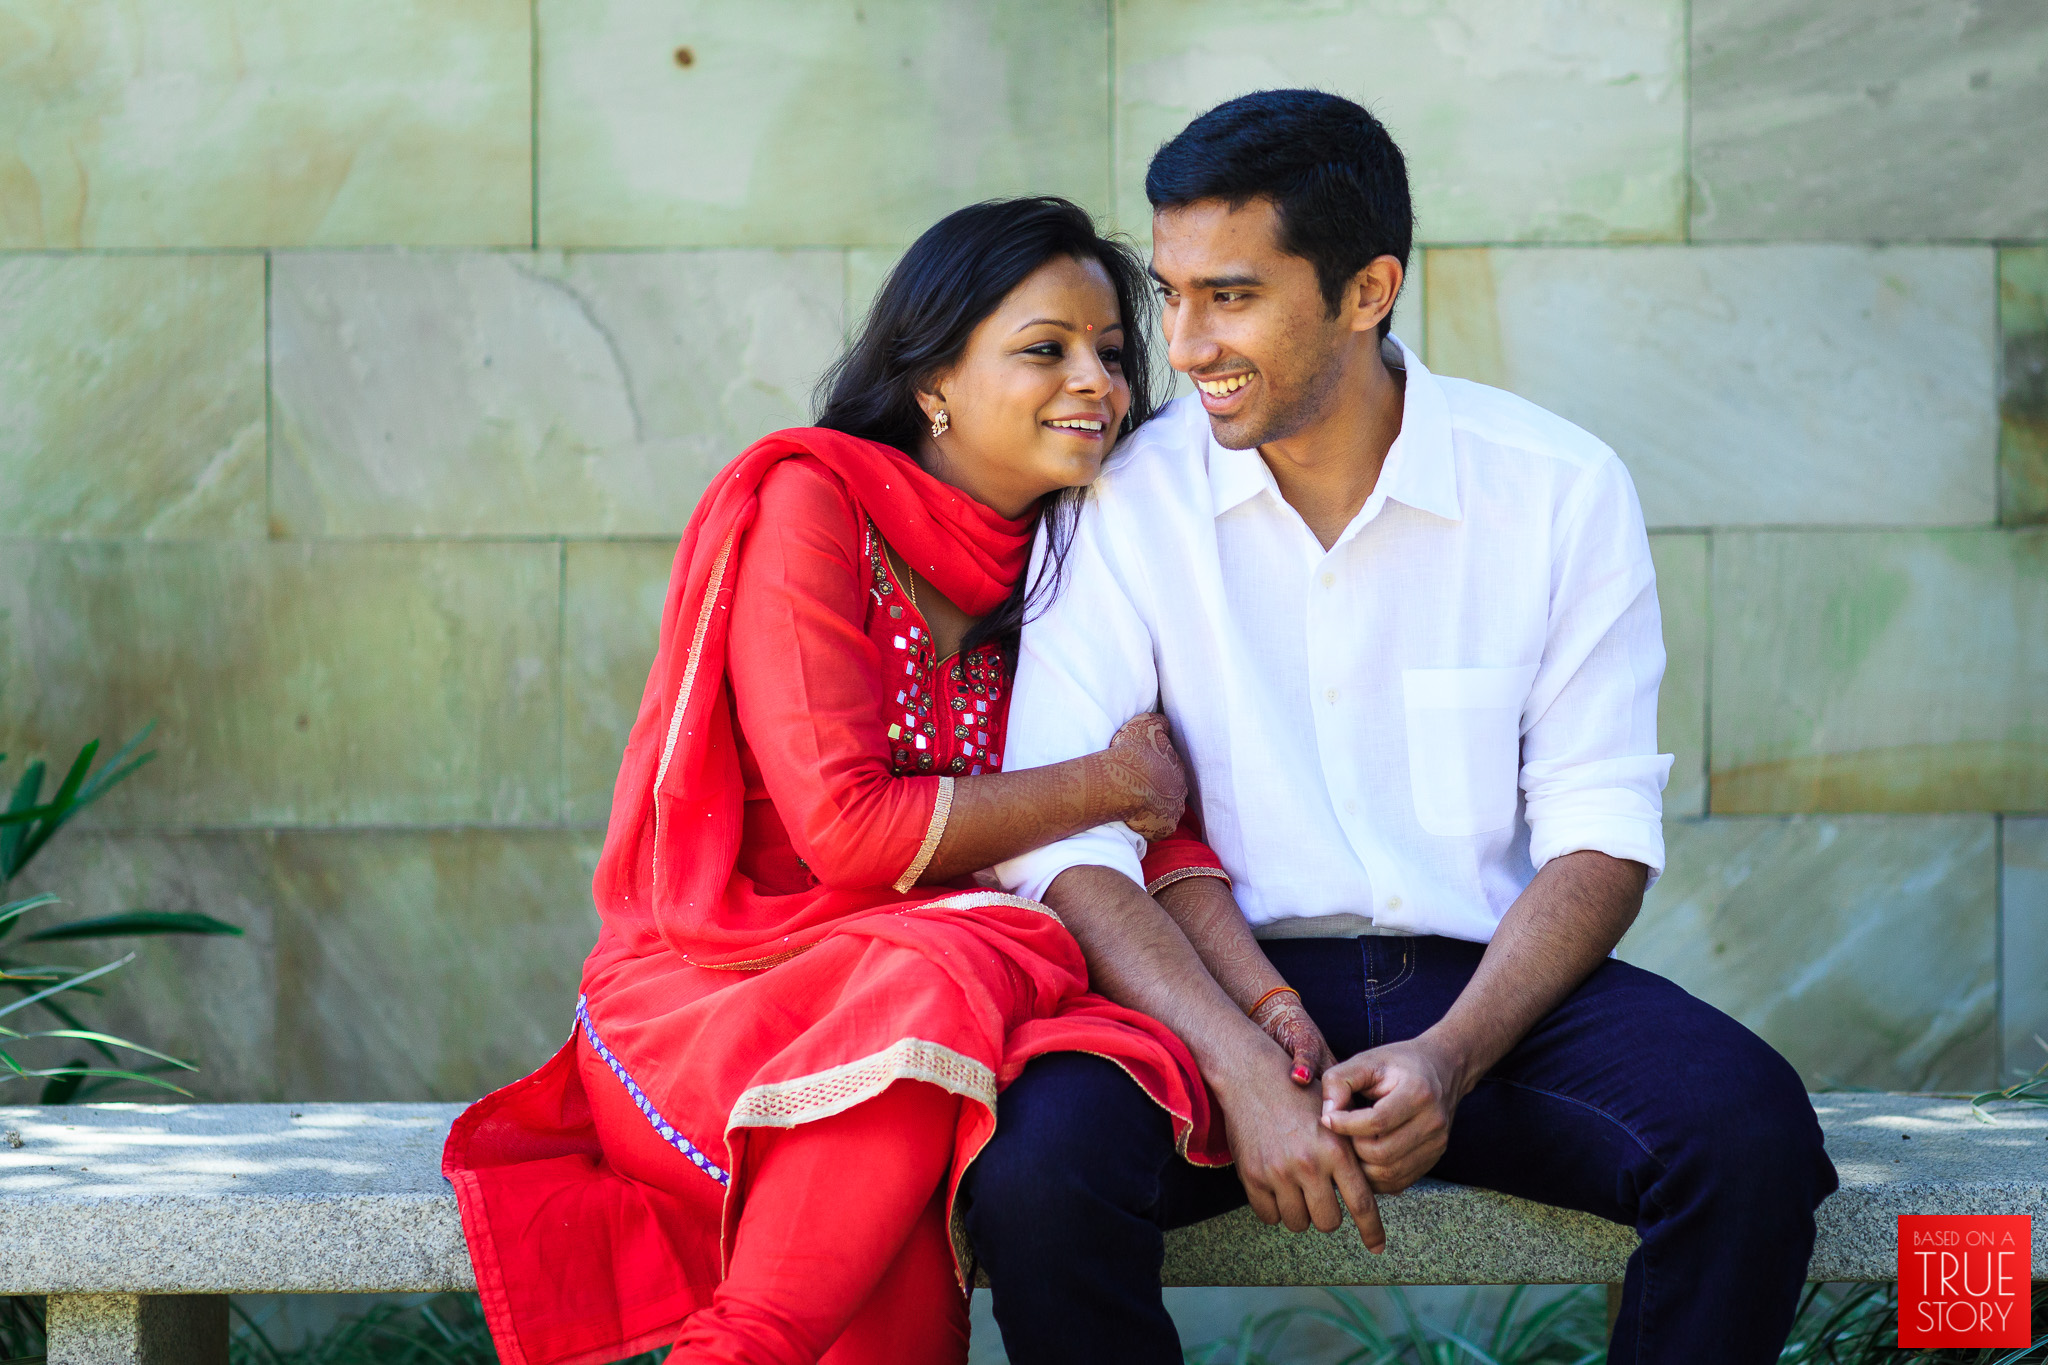 candid-wedding-photographers-bangalore-0003.jpg